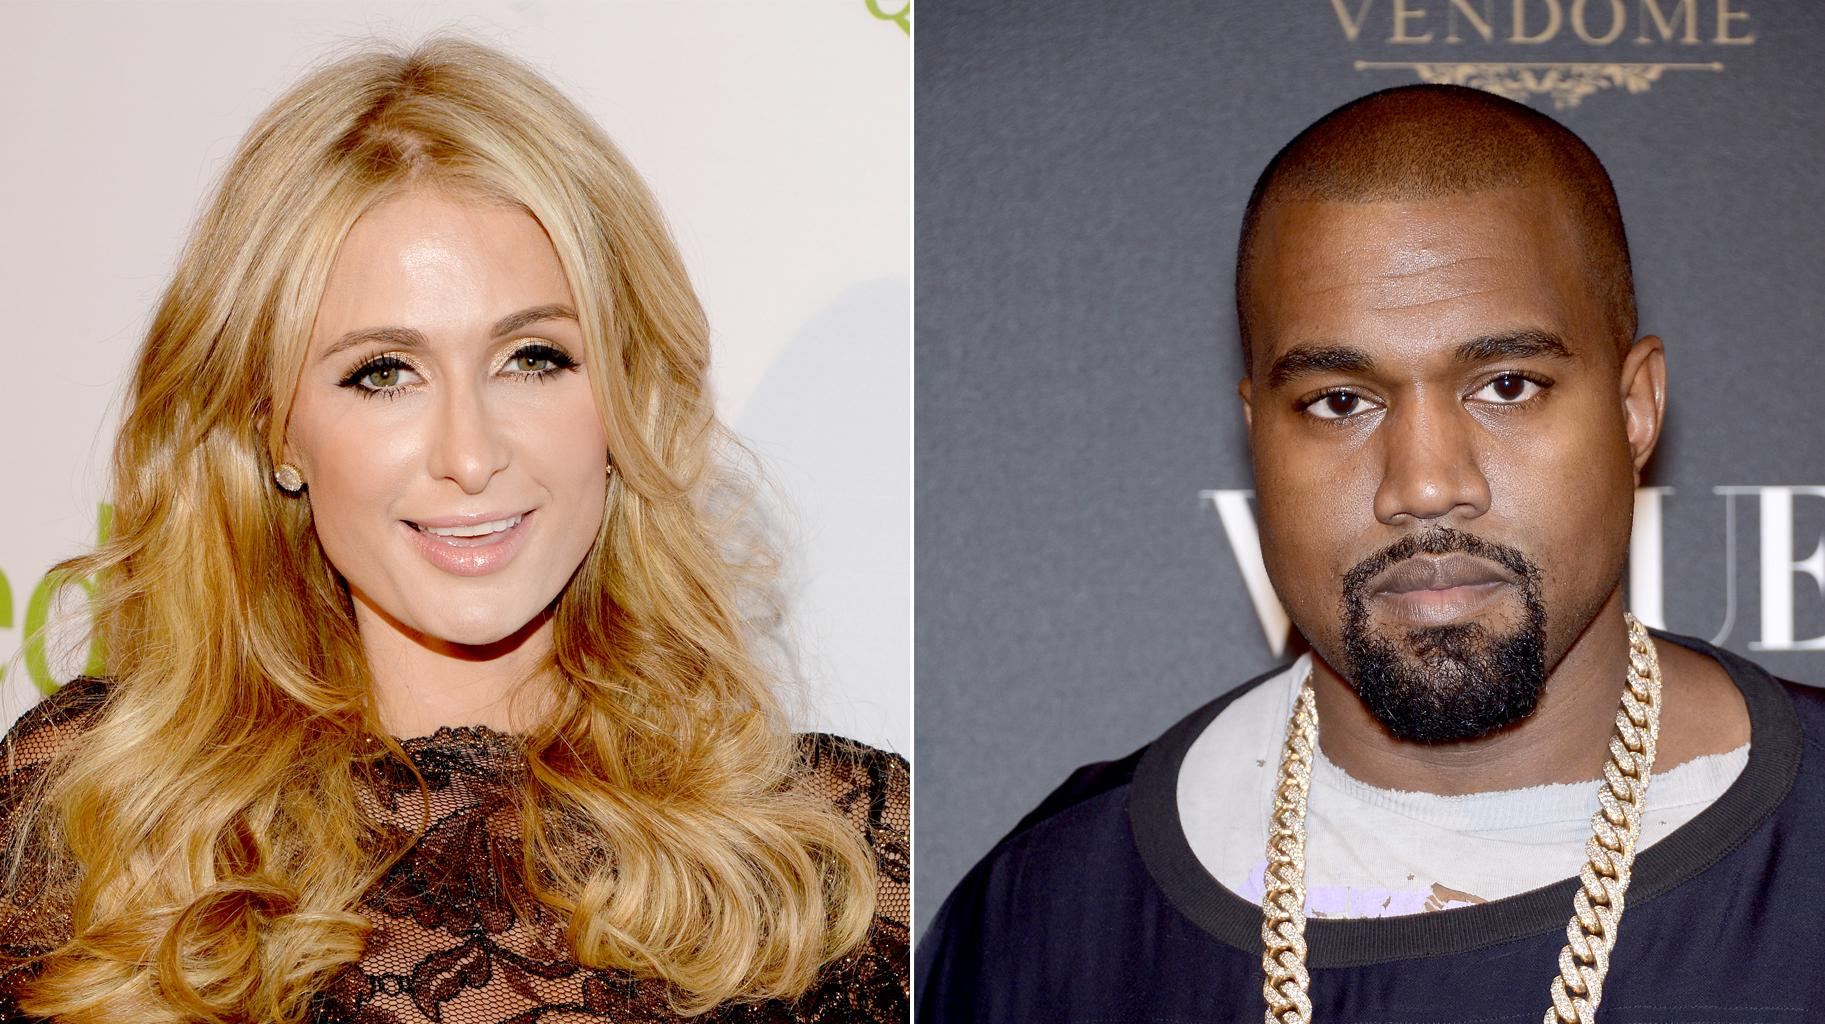 Paris Hilton Goes All Out With Parody Presidential Campaign To Mock Kanye West - Check Out Her Hilarious Slogan And Pledge!